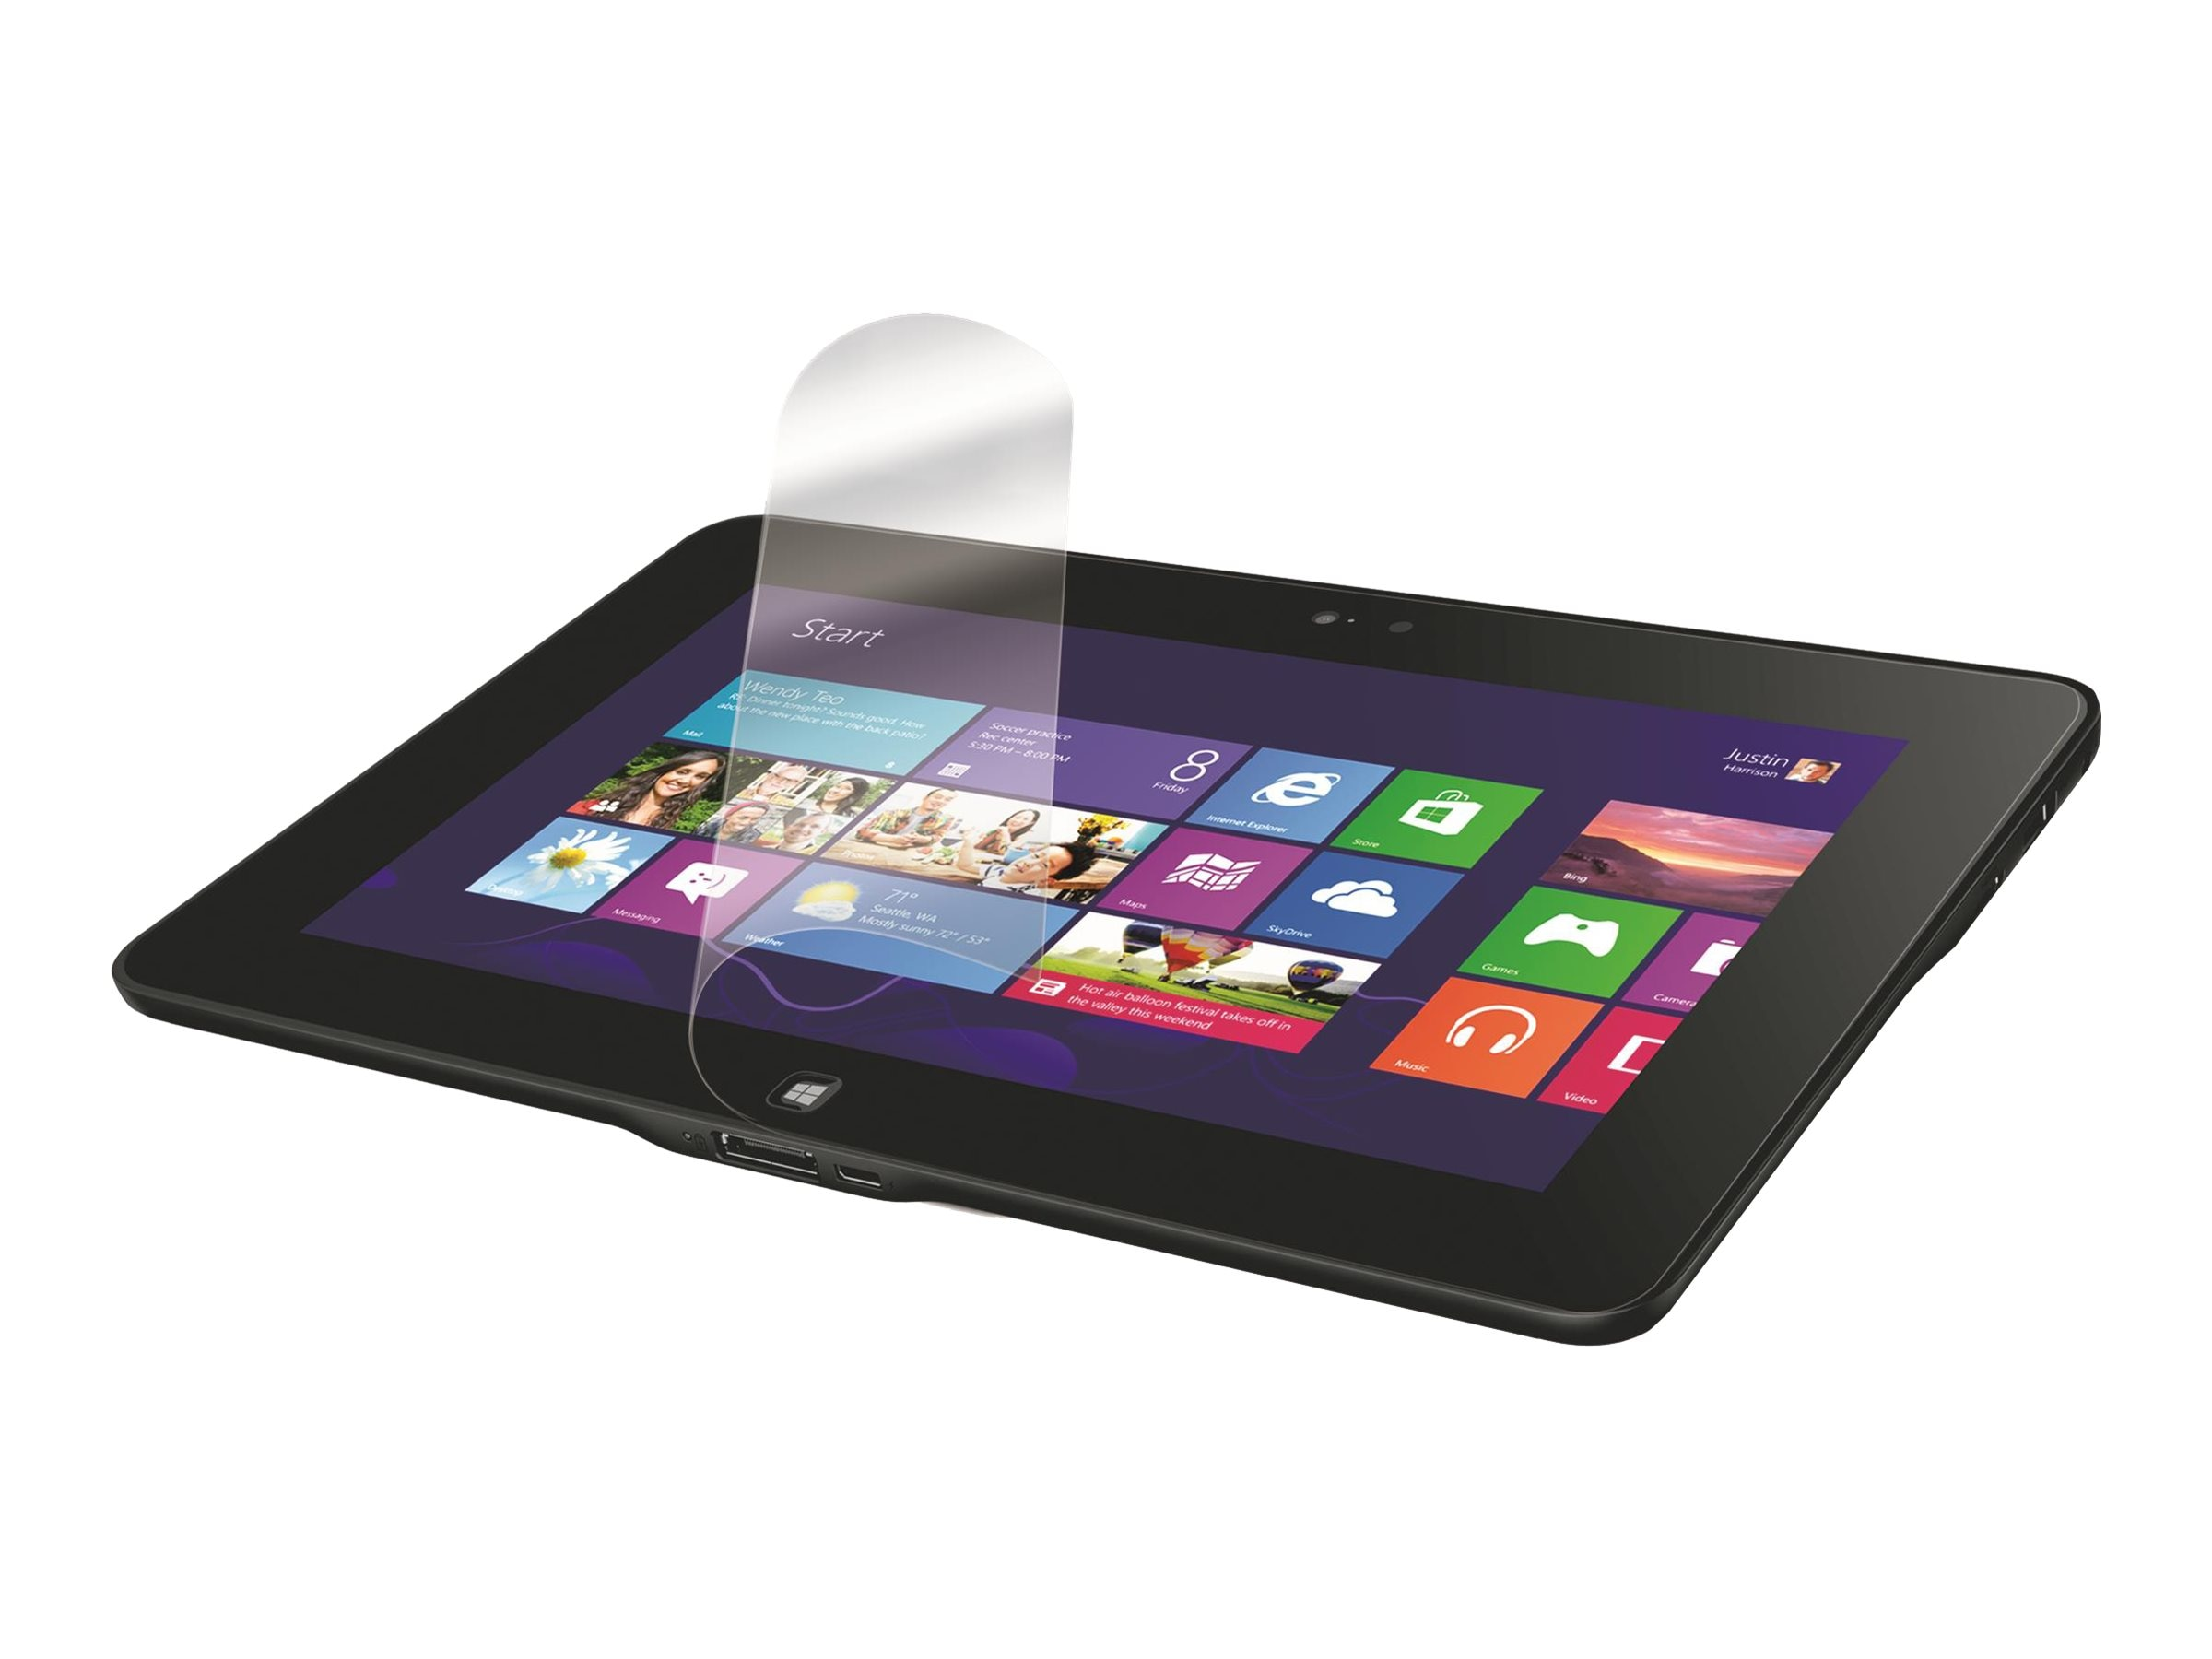 3M Anti-glare screen protector for Dell Venue 10 Pro, AGTDE001